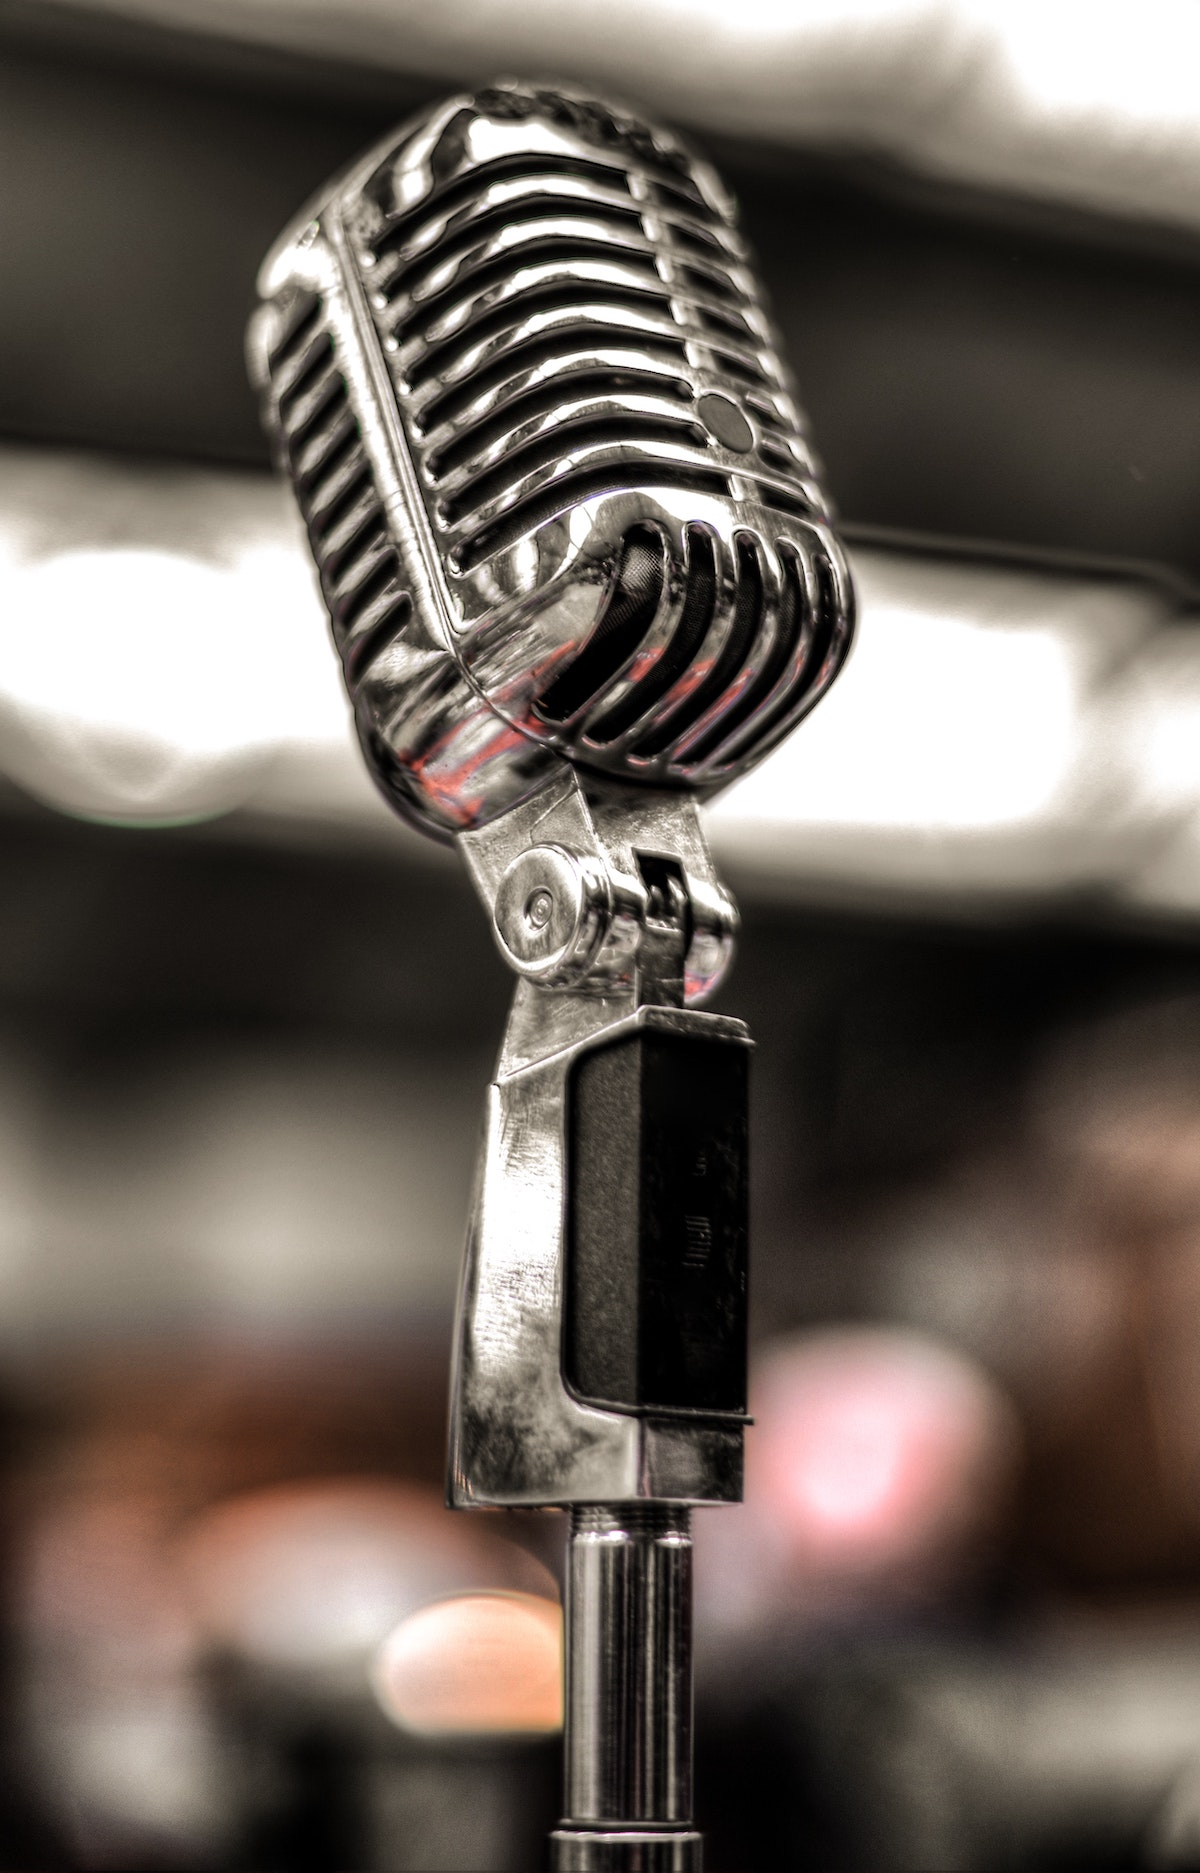 Podcast intros that attract listeners: image of microphone